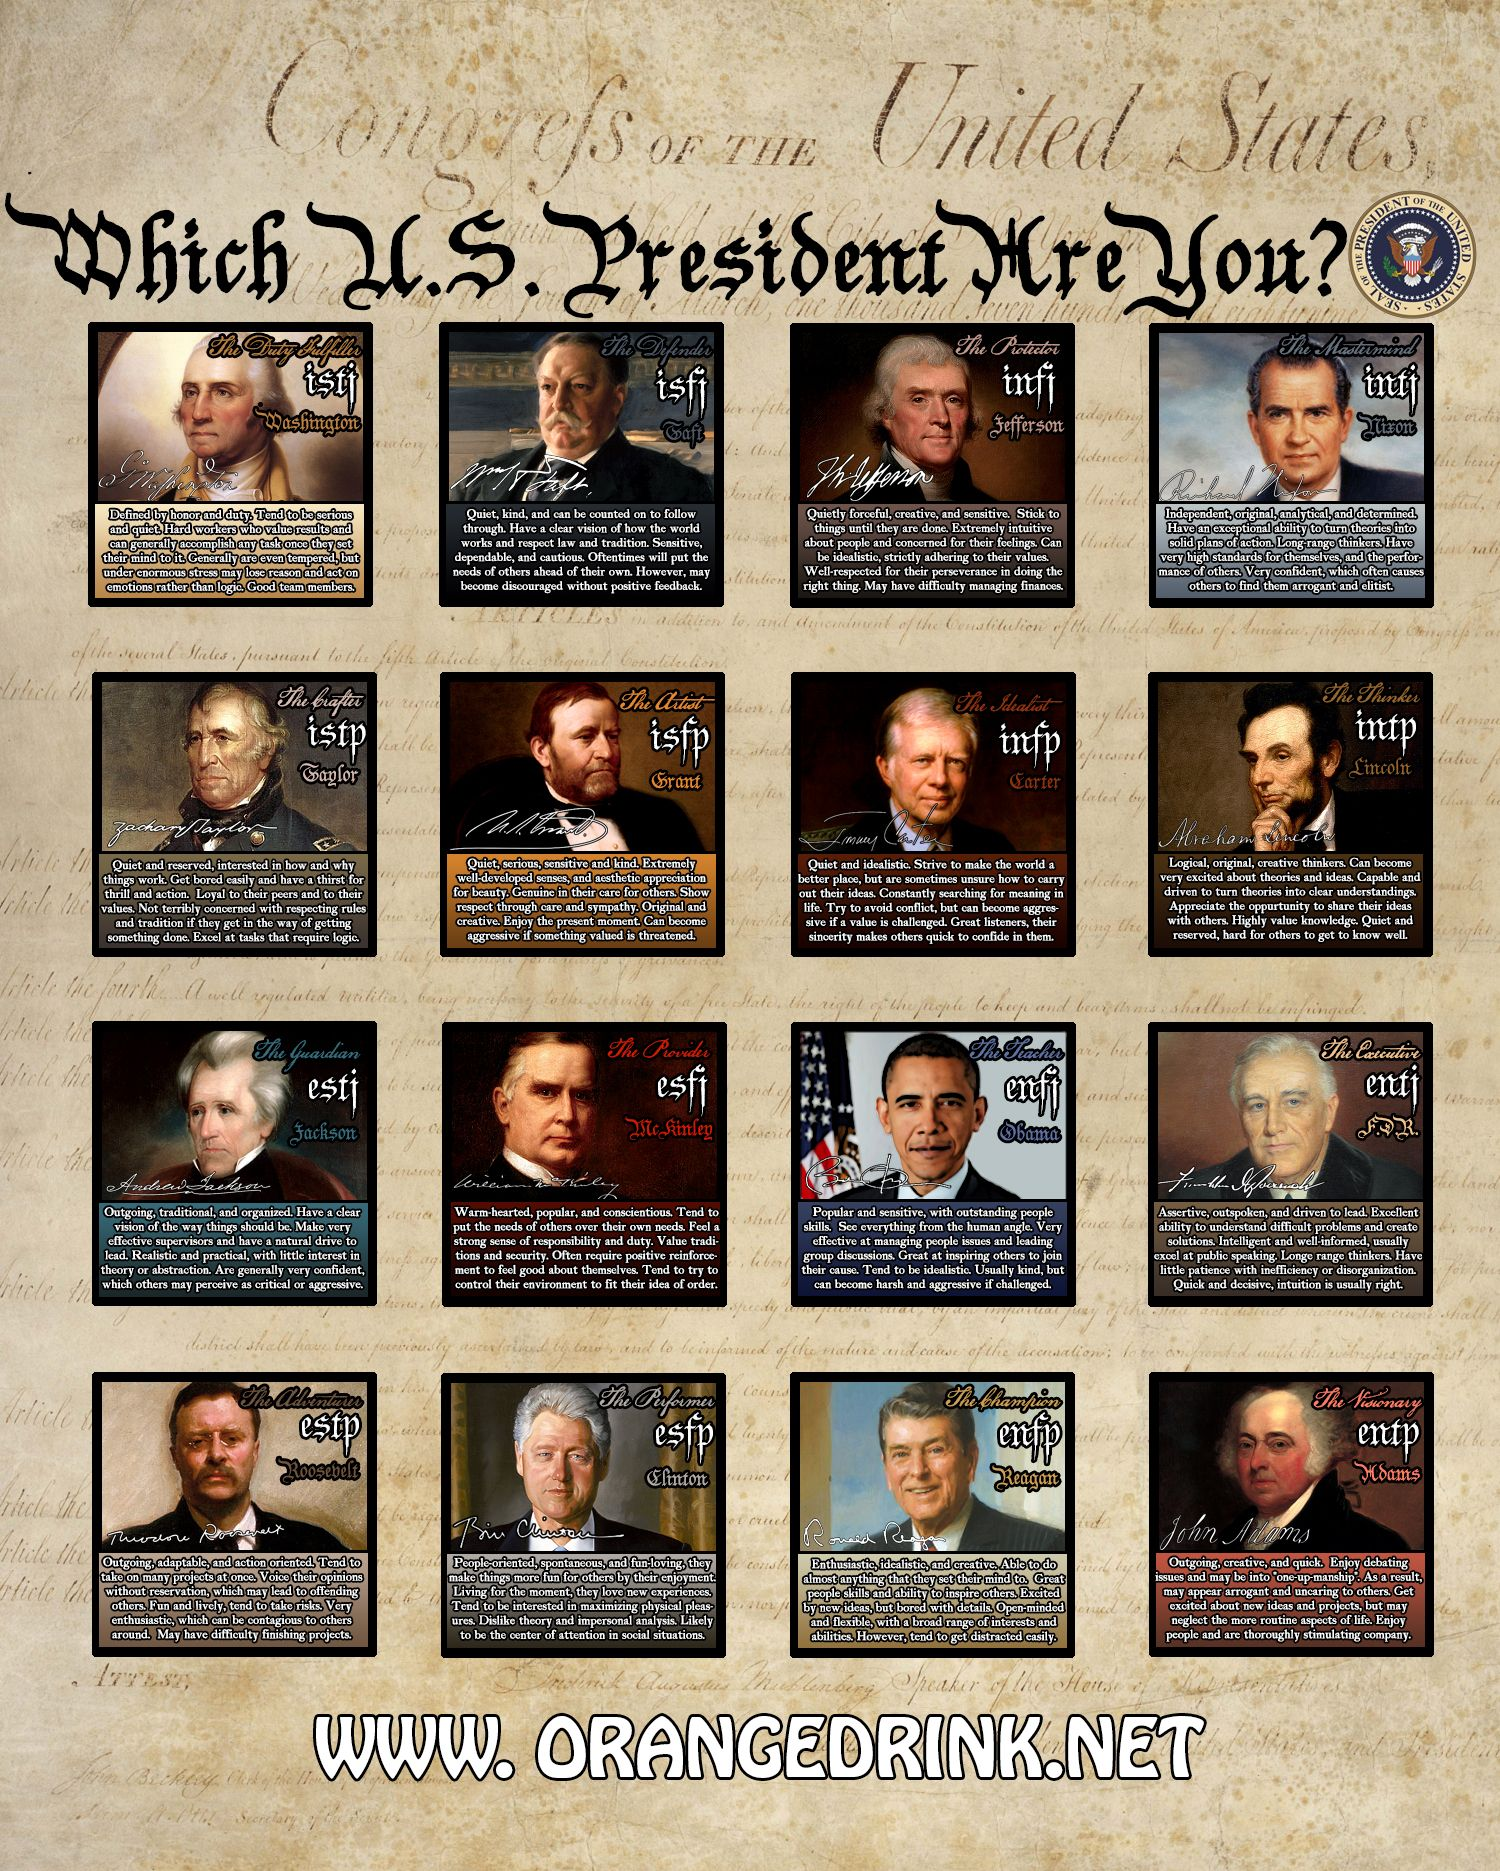 Myers Briggs Presidents